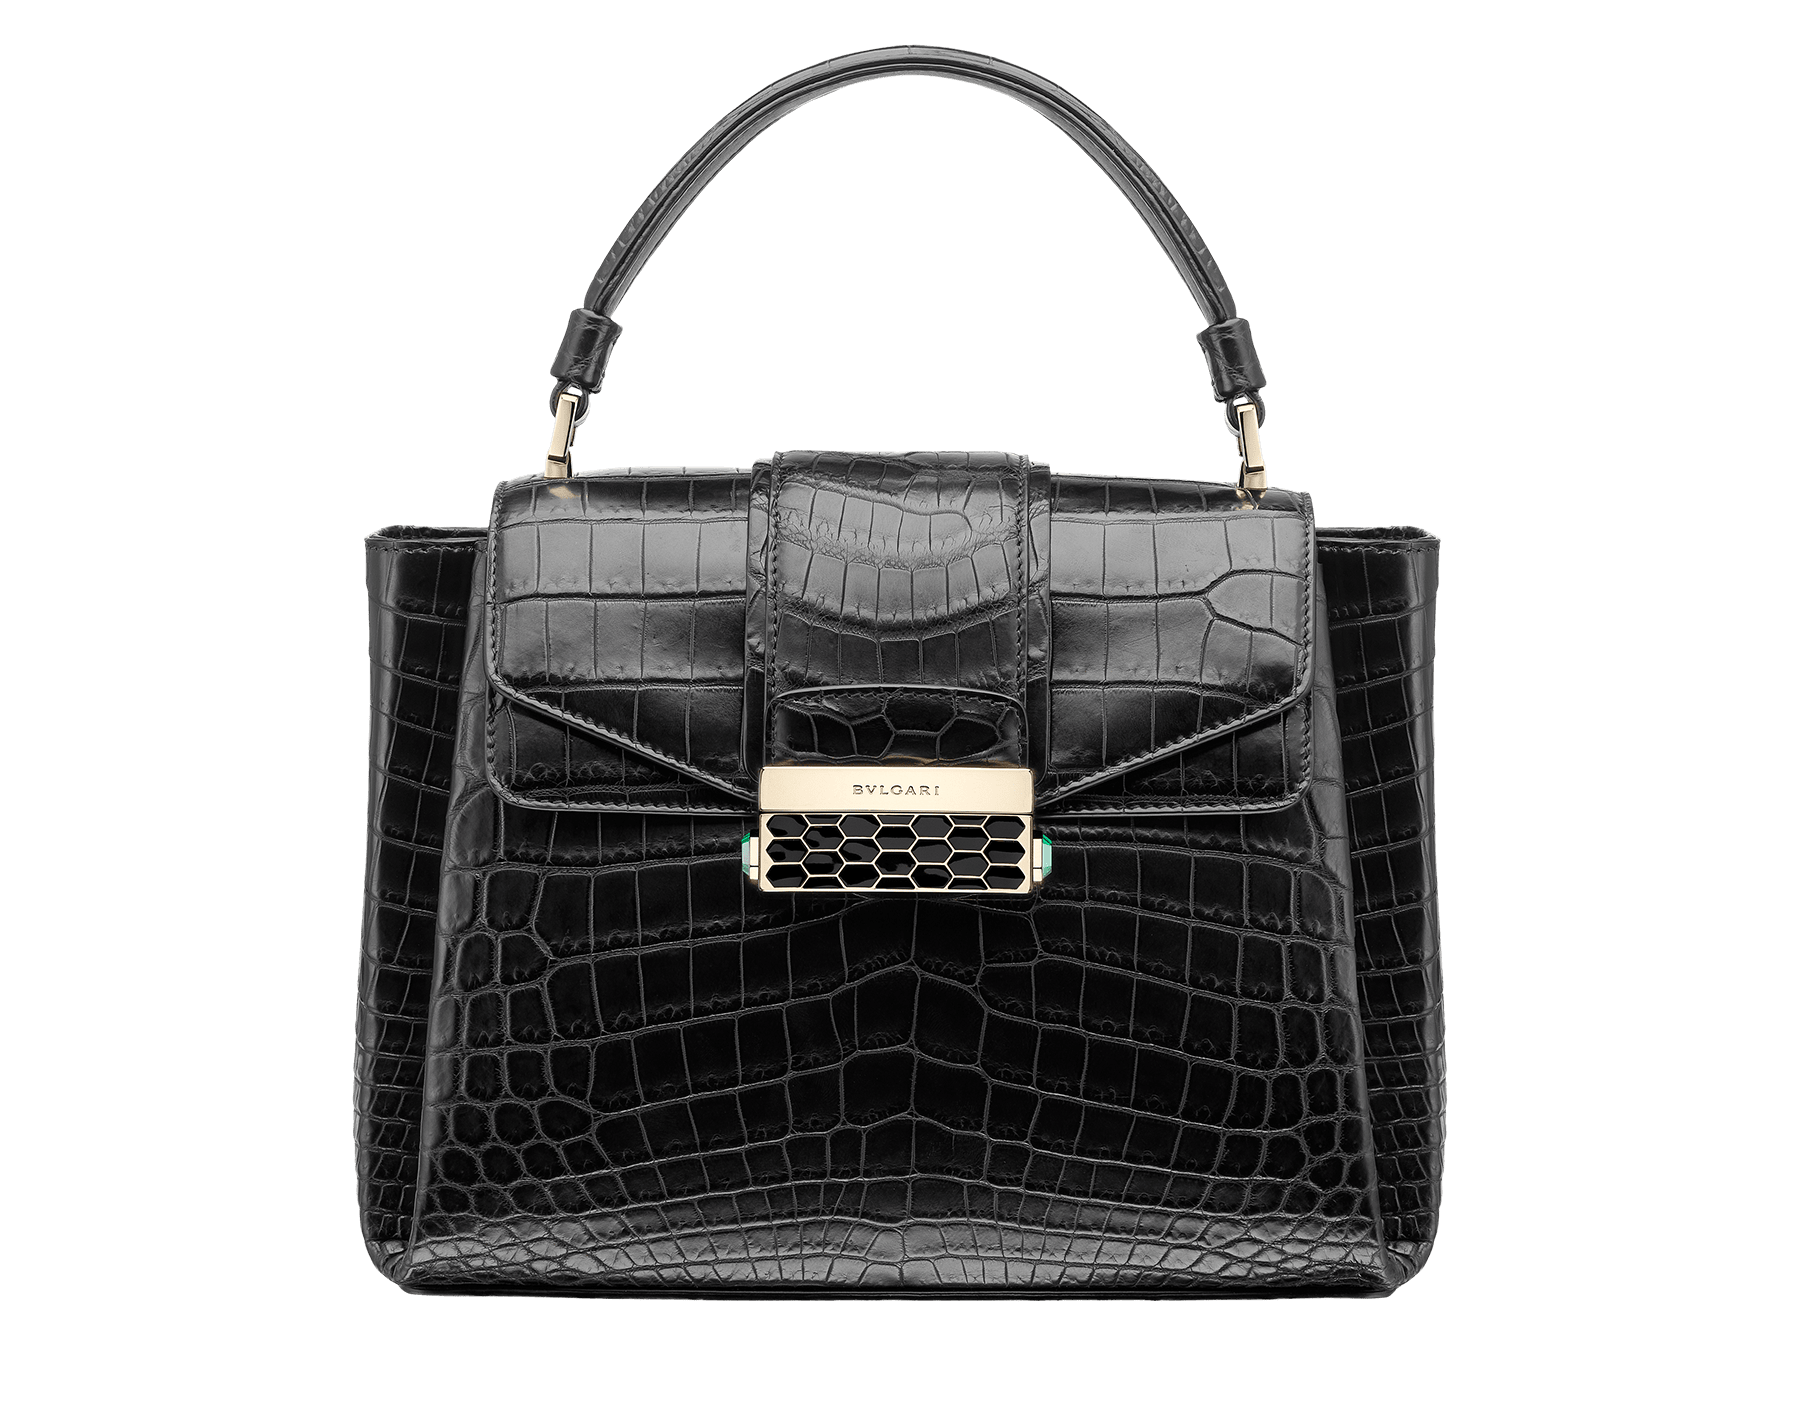 Top handle bag Serpenti Viper in black matt crocodile skin. Brass light gold plated hardware and snap closure in black shiny enamel with iconic Scaglie design. 284486 image 1